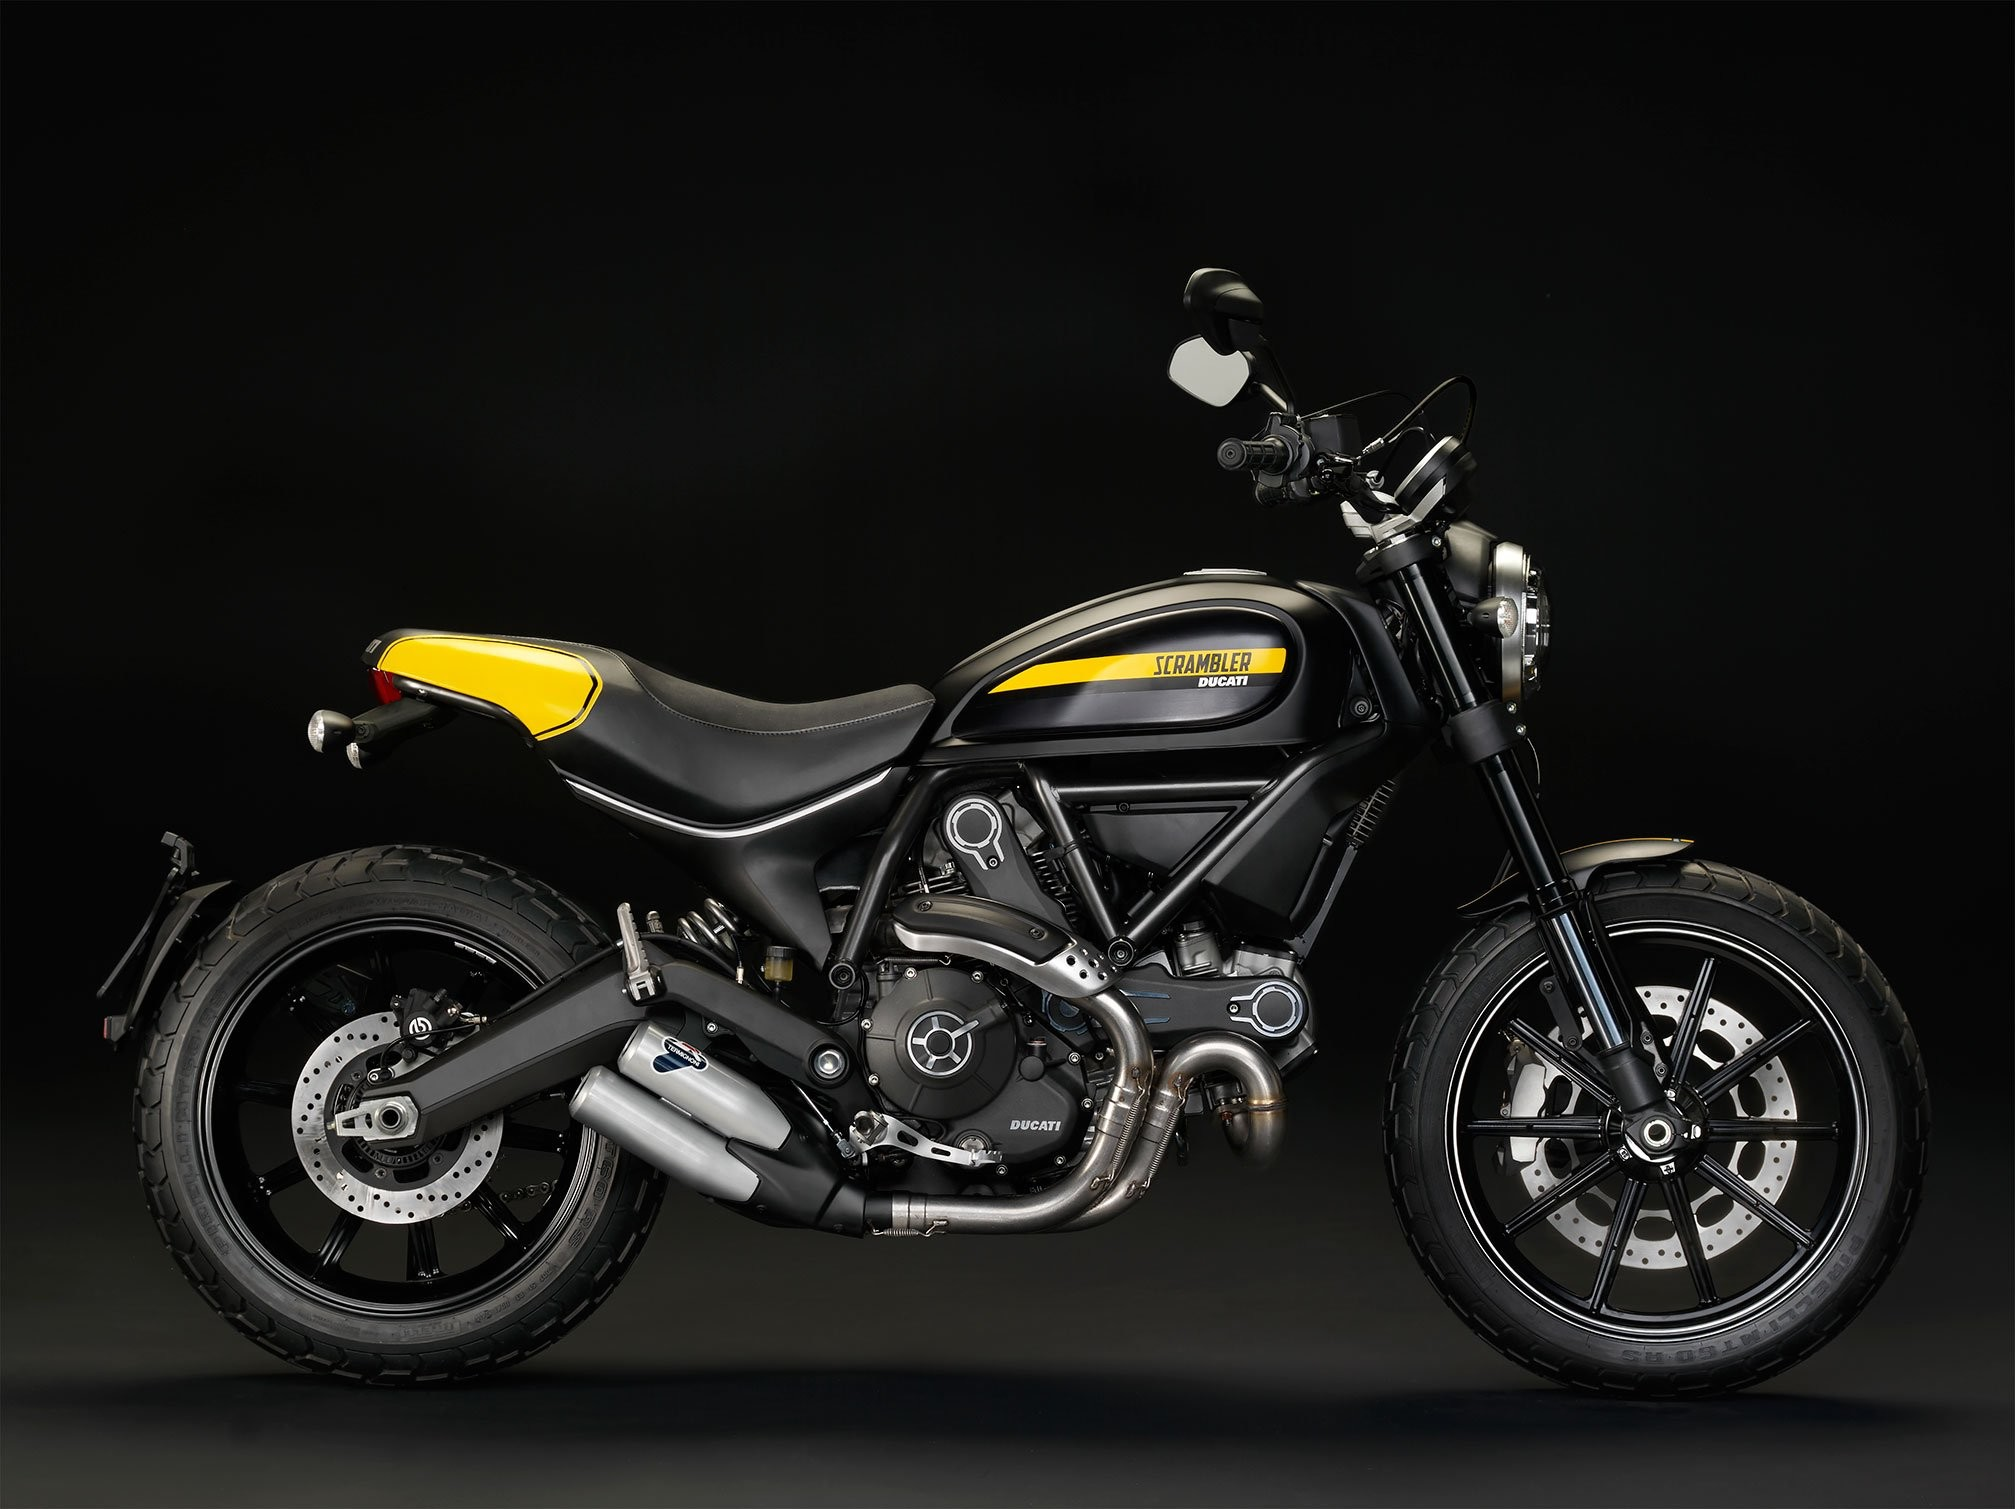 2015x1509 2015 Ducati Scrambler Full Throttle dirtbike wallpaper |  | 526214  | WallpaperUP